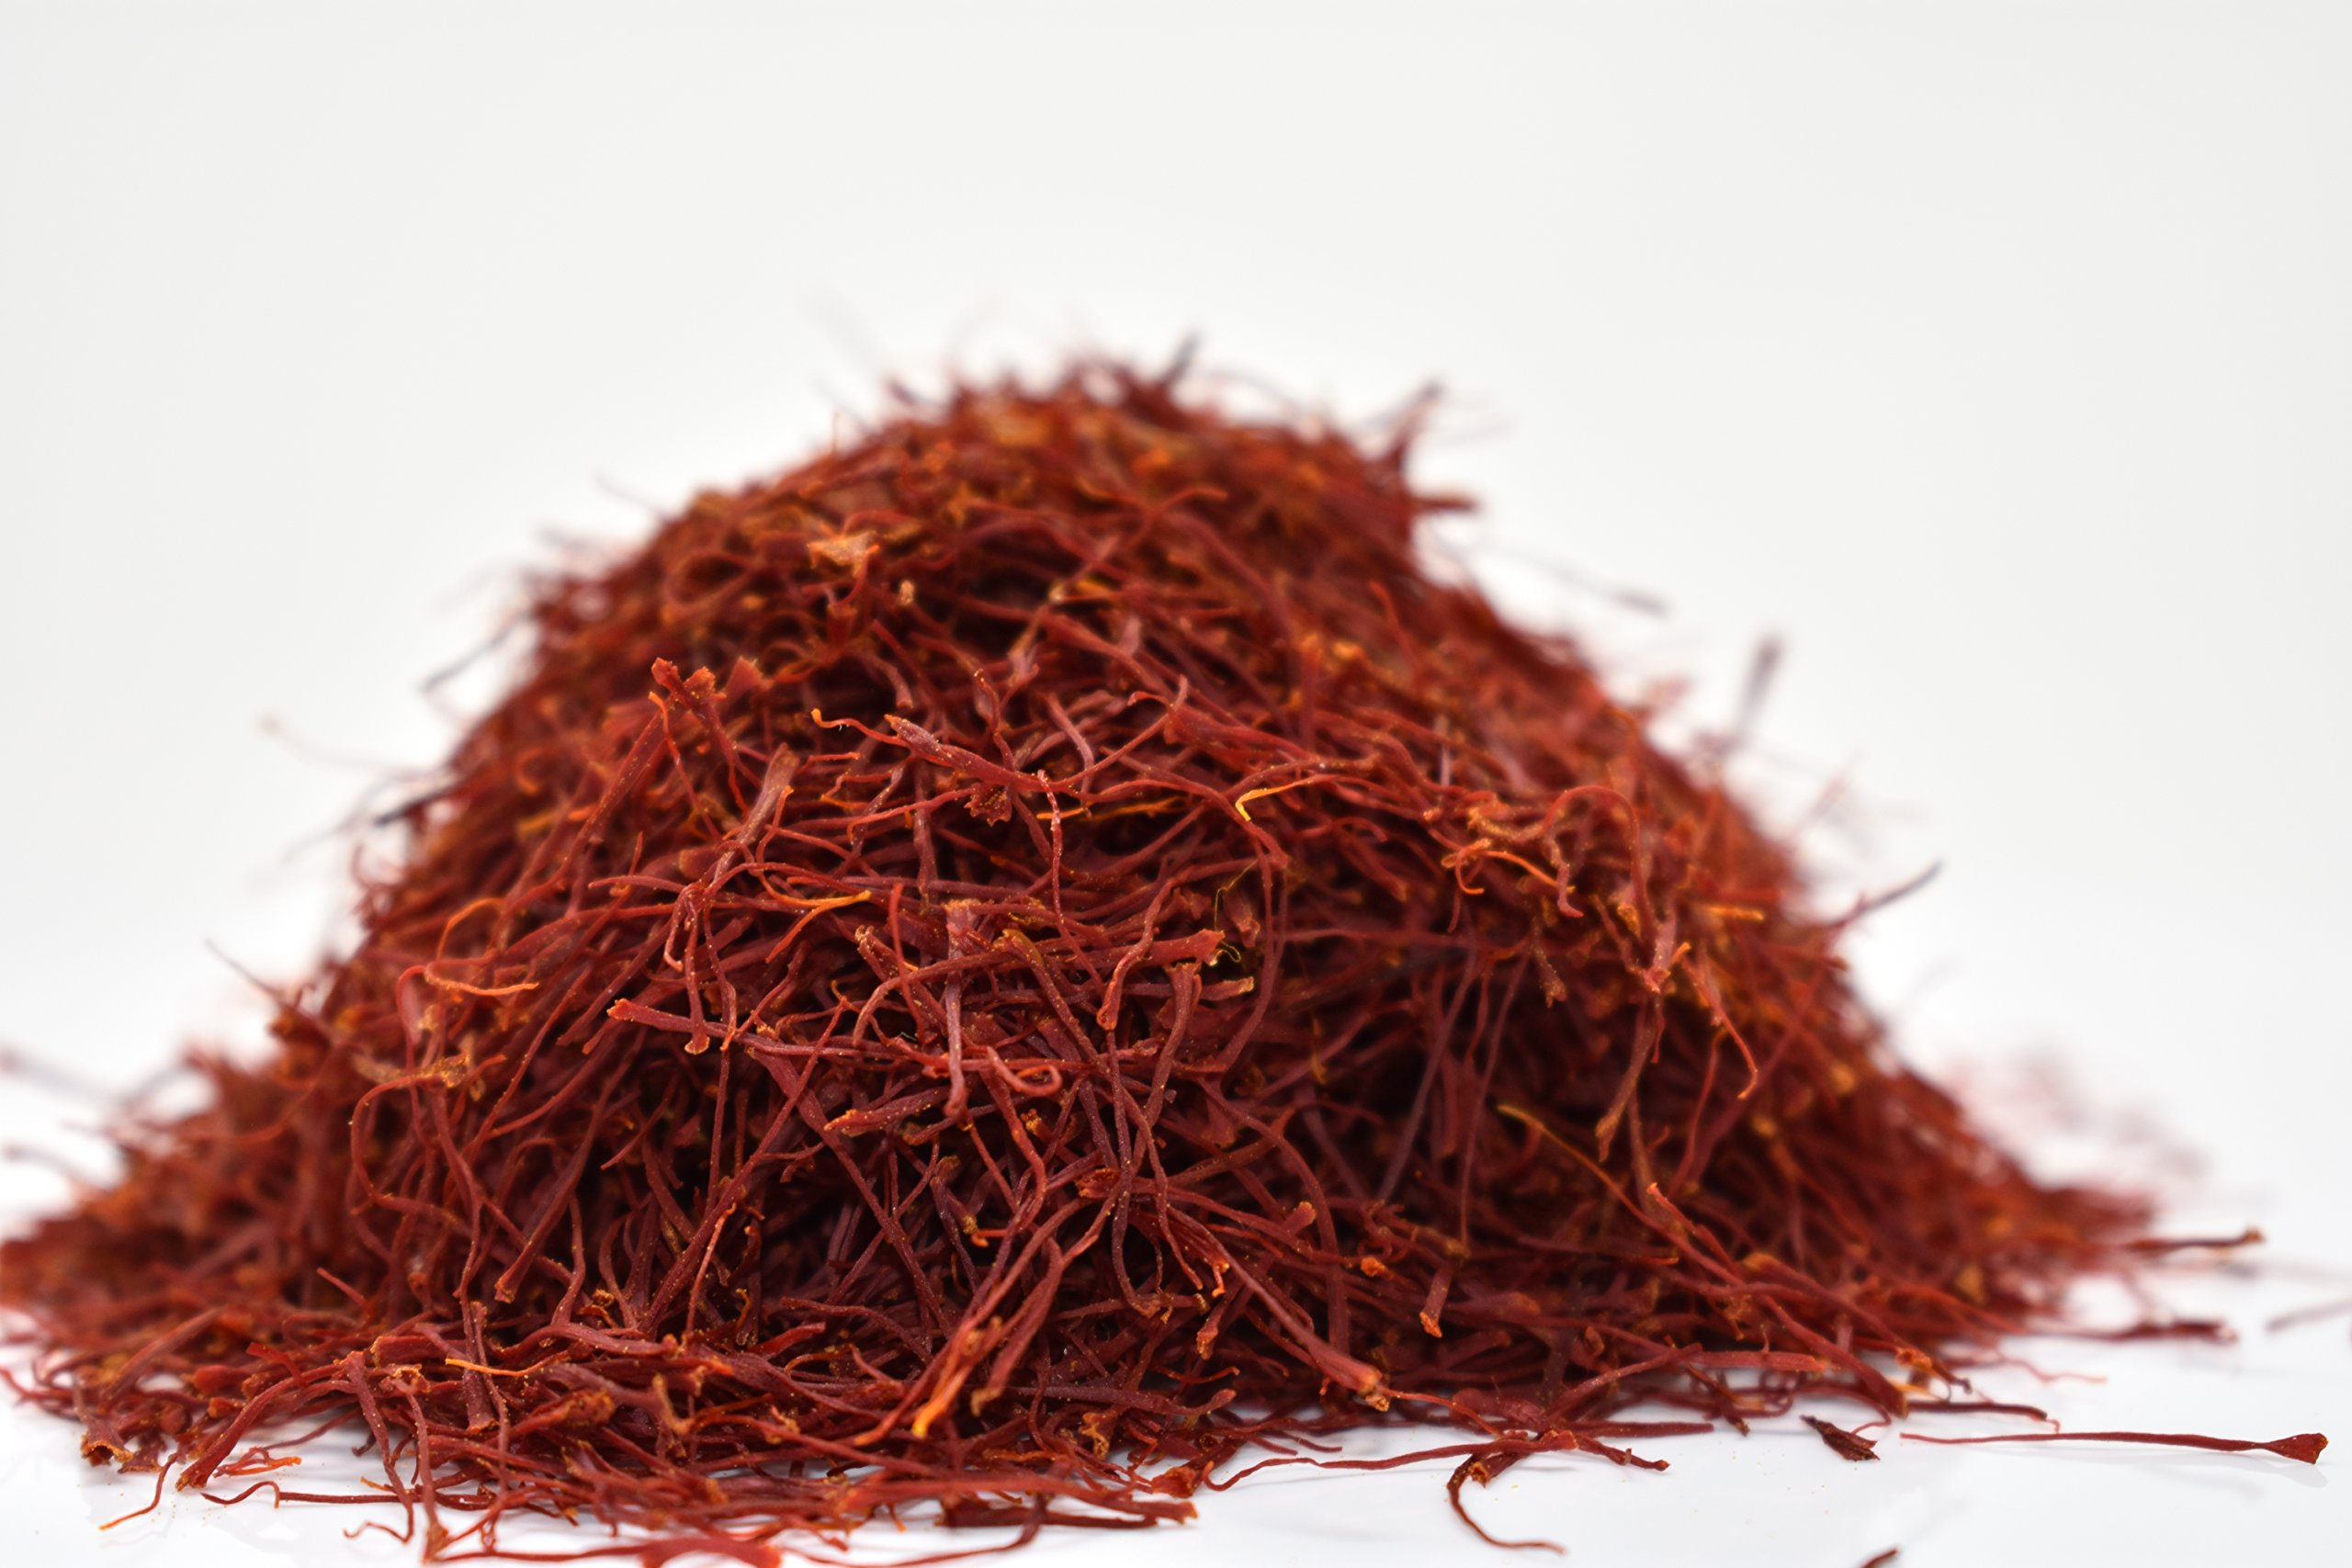 Persian Saffron Threads by Slofoodgroup Premium Quality Saffron Threads, All Red Saffron Filaments (various sizes) Grade I Saffron (1 Ounce Saffron) by SLO FOOD GROUP (Image #8)